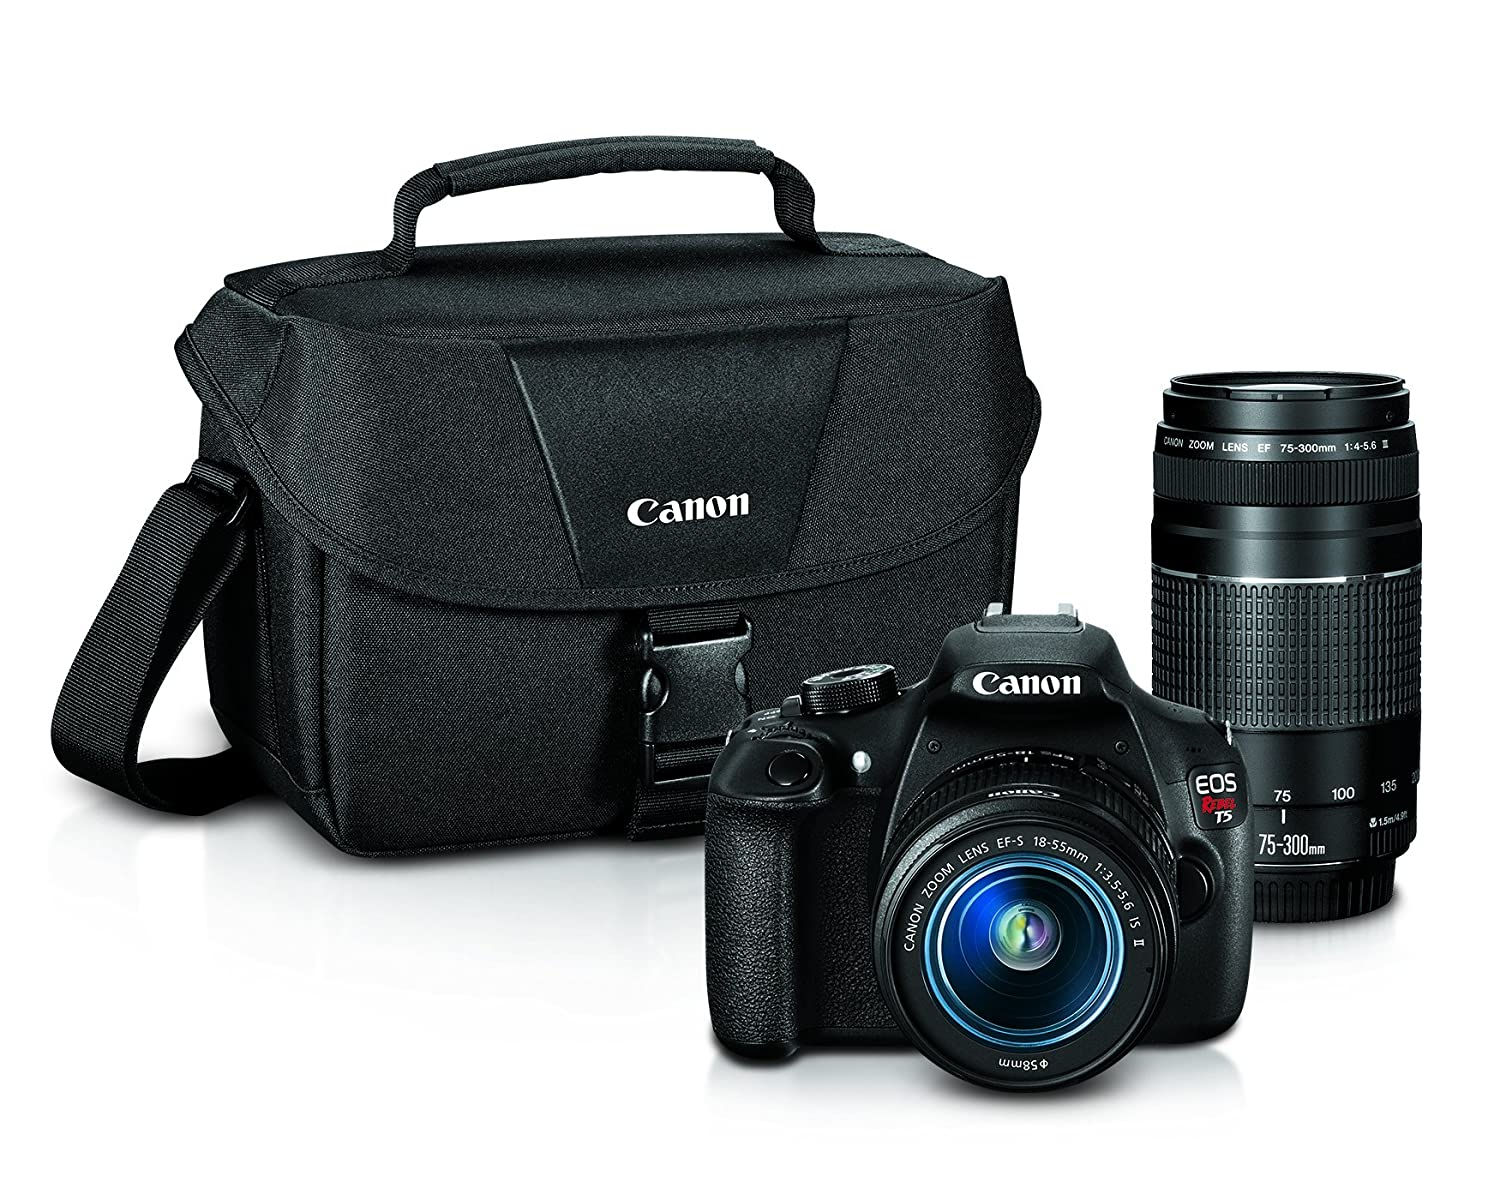 Top 10 Best DSLR Camera (2020 Reviews & Buying Guide) 6